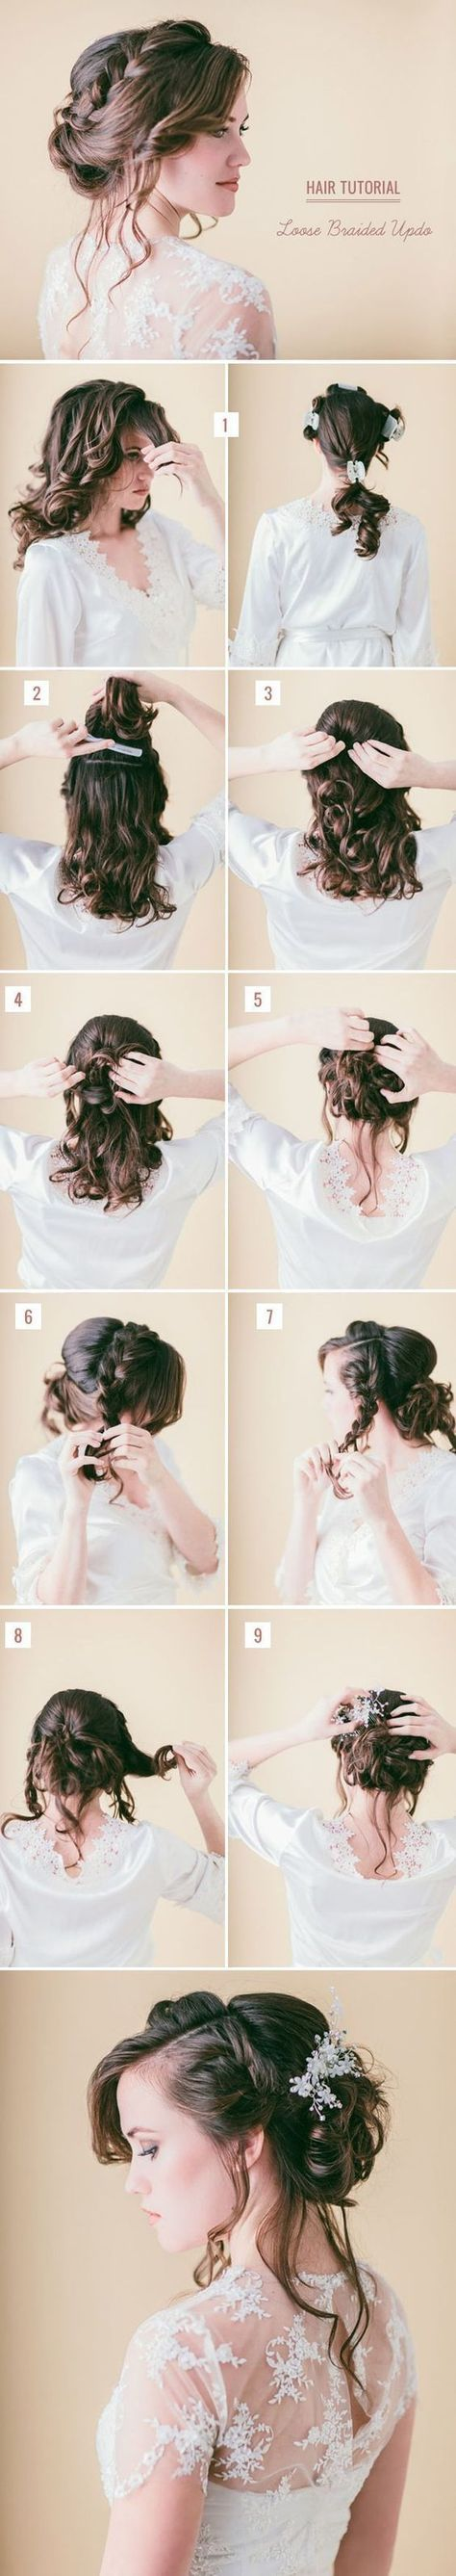 Boho bridal hairstyle: loose braided updo tutorial.                                                                                                                                                                                 More